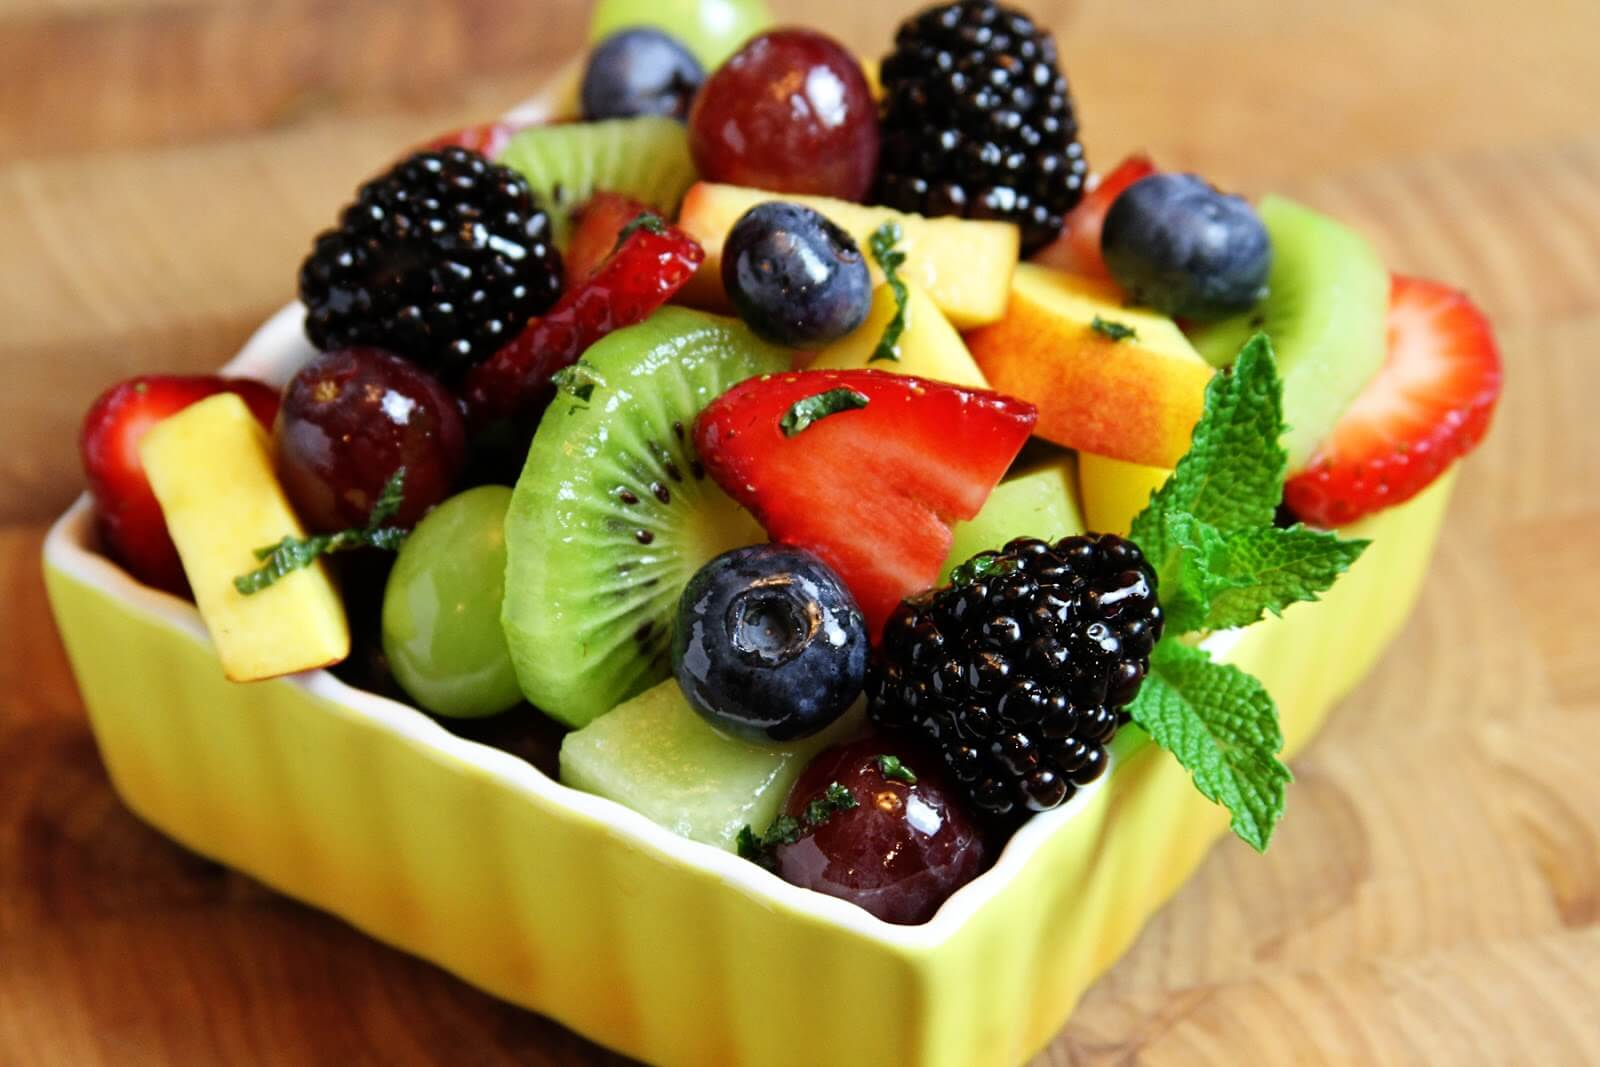 Delicious healthy breakfasts with fruit salad.